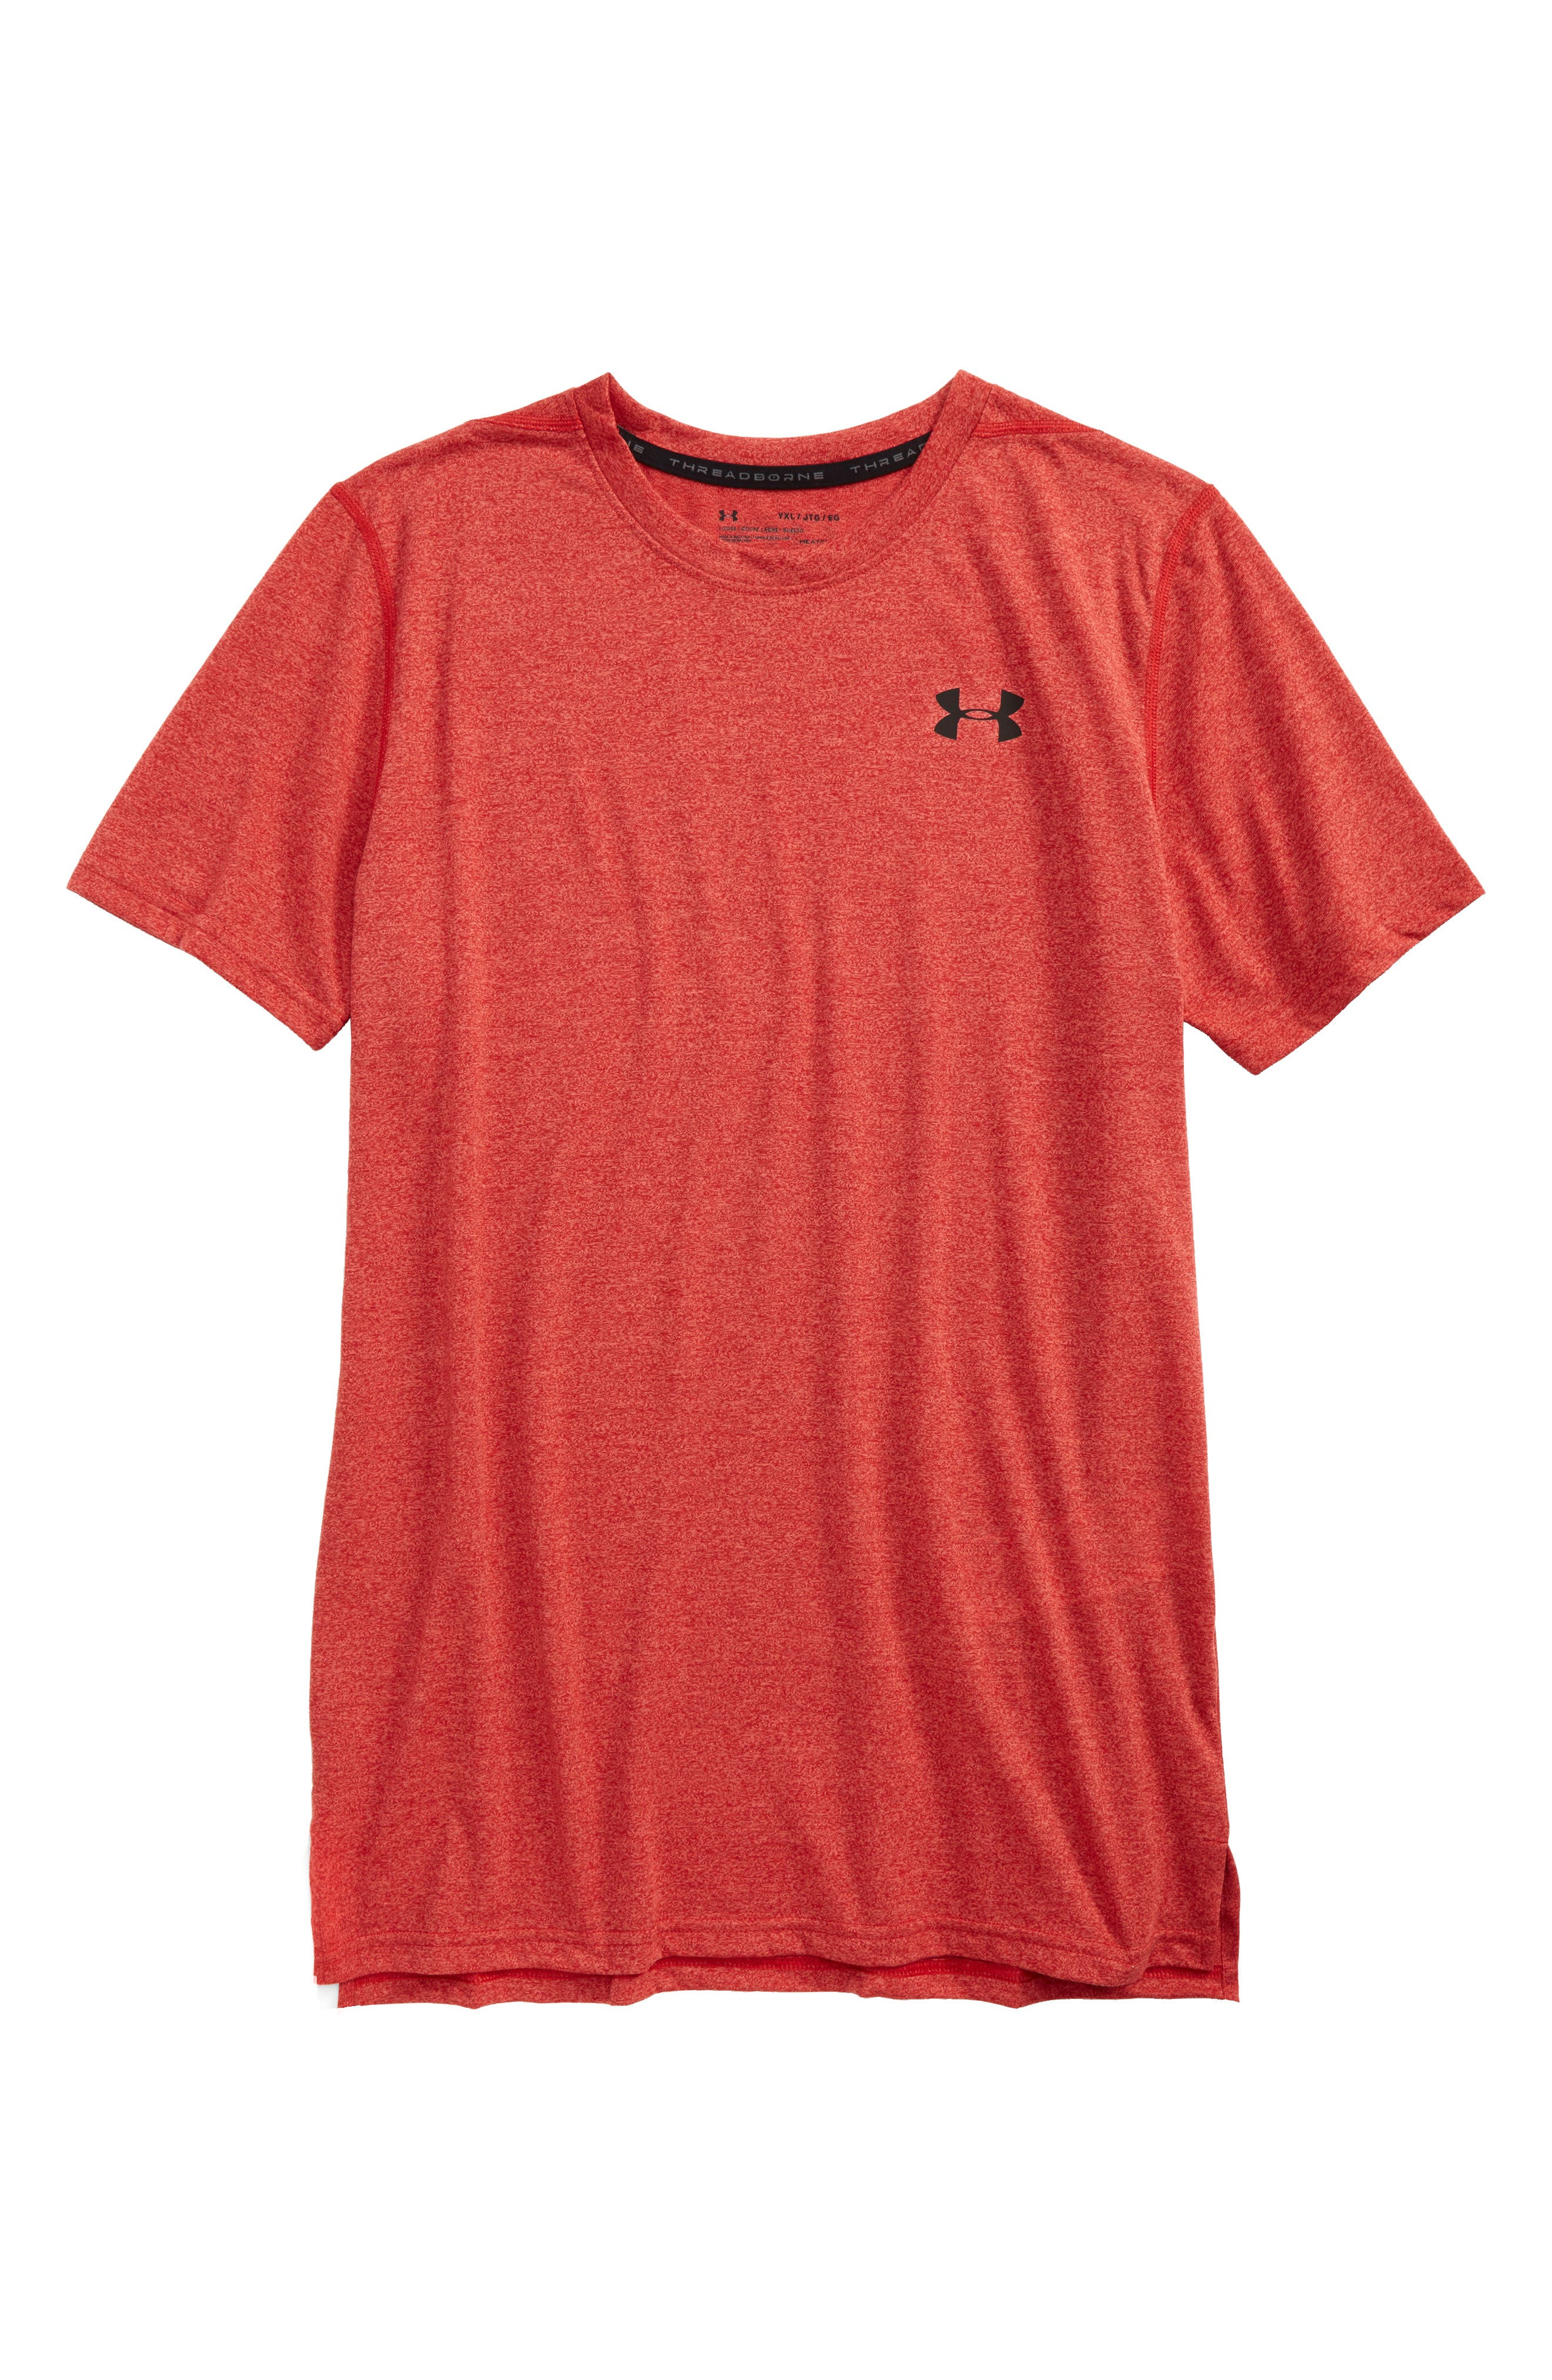 Under Armour Threadborne T-Shirt (Big Boys)